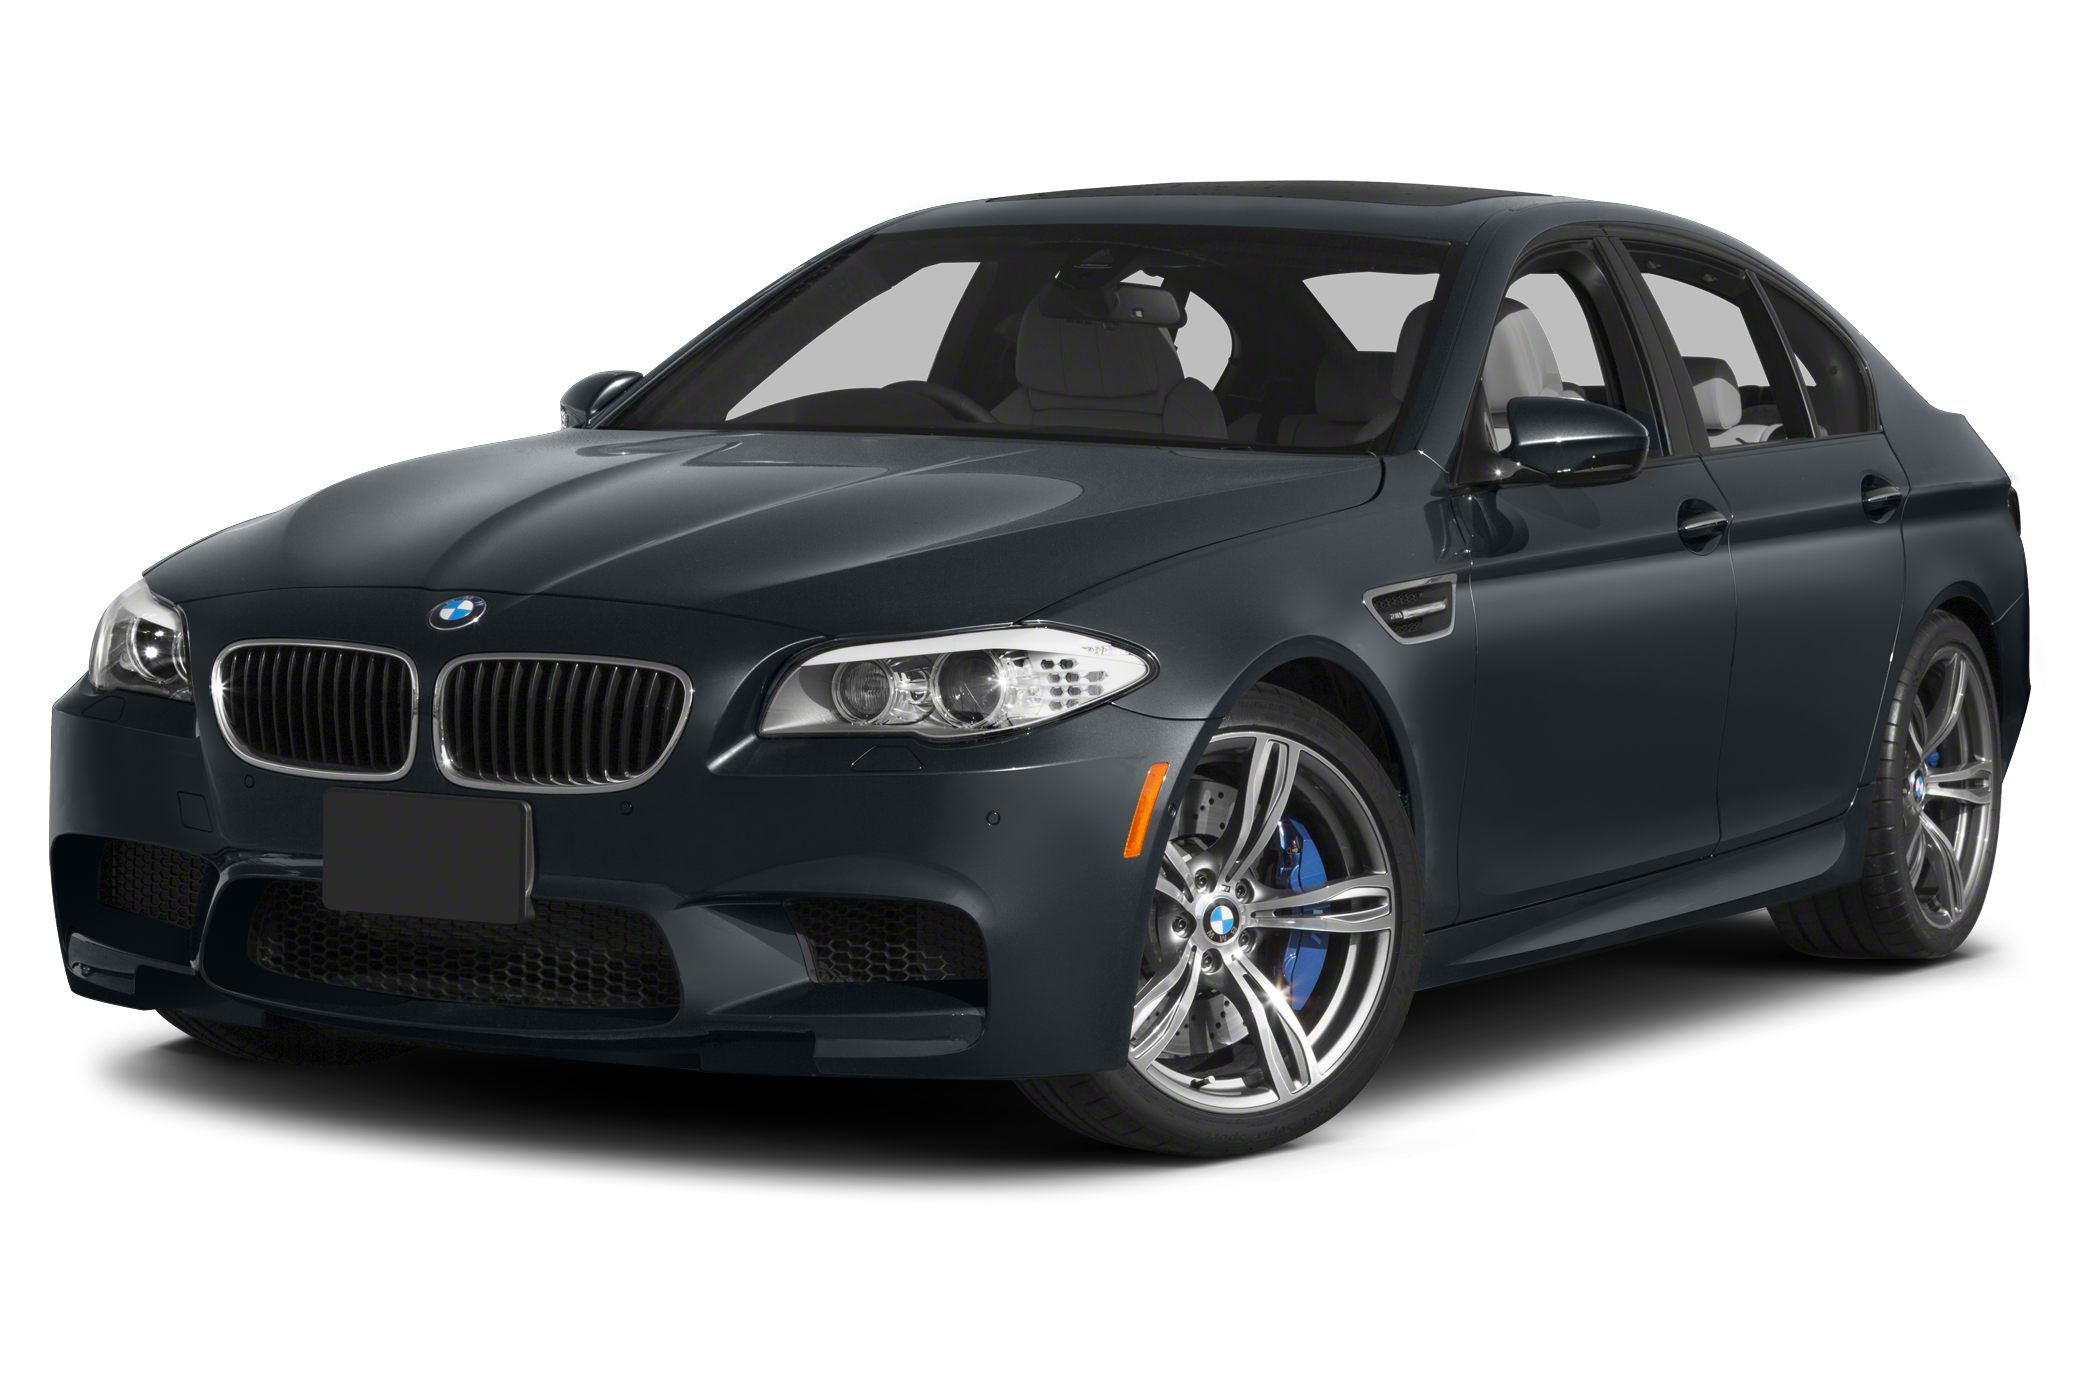 2013 Bmw M5 Specs And Prices